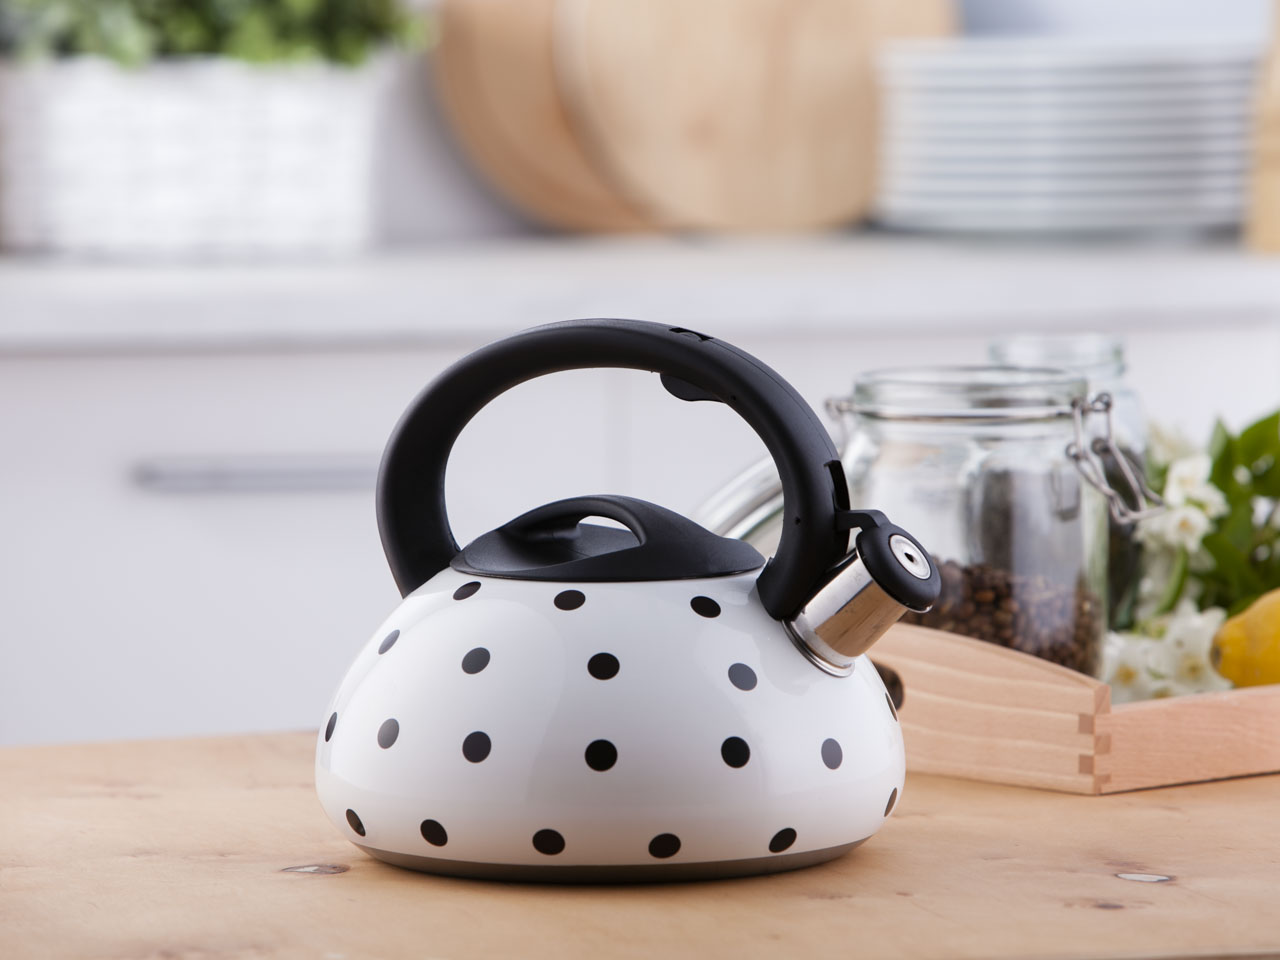 Stainless steel whistling kettle Kameleon 3,0l.